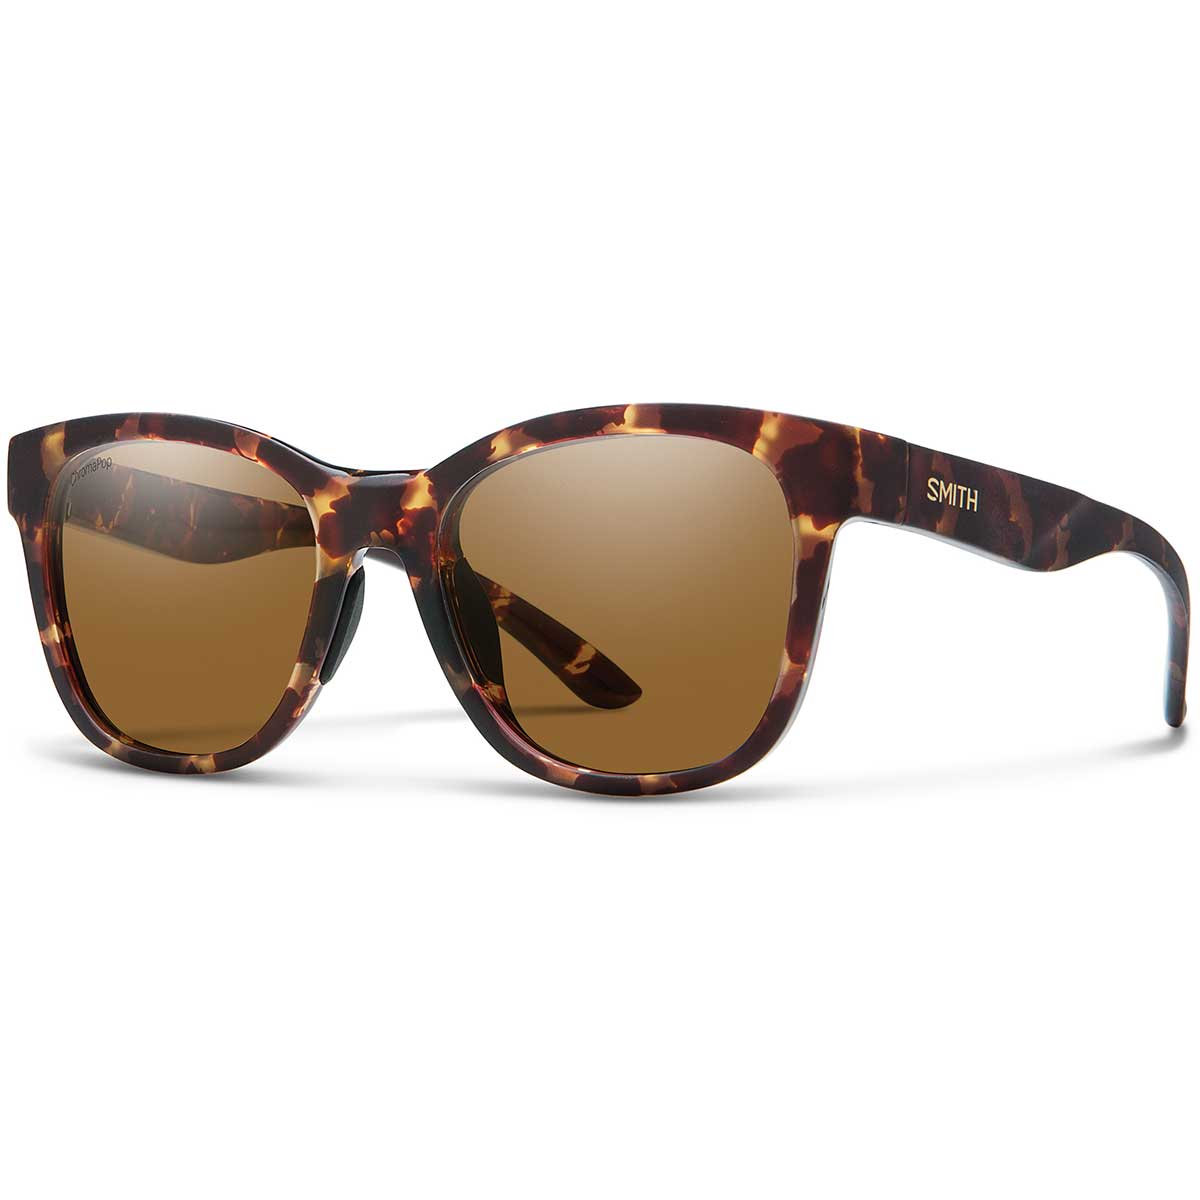 Smith Caper Sunglasses Polarized Chromapop in Matte Tortoise with Brown main view